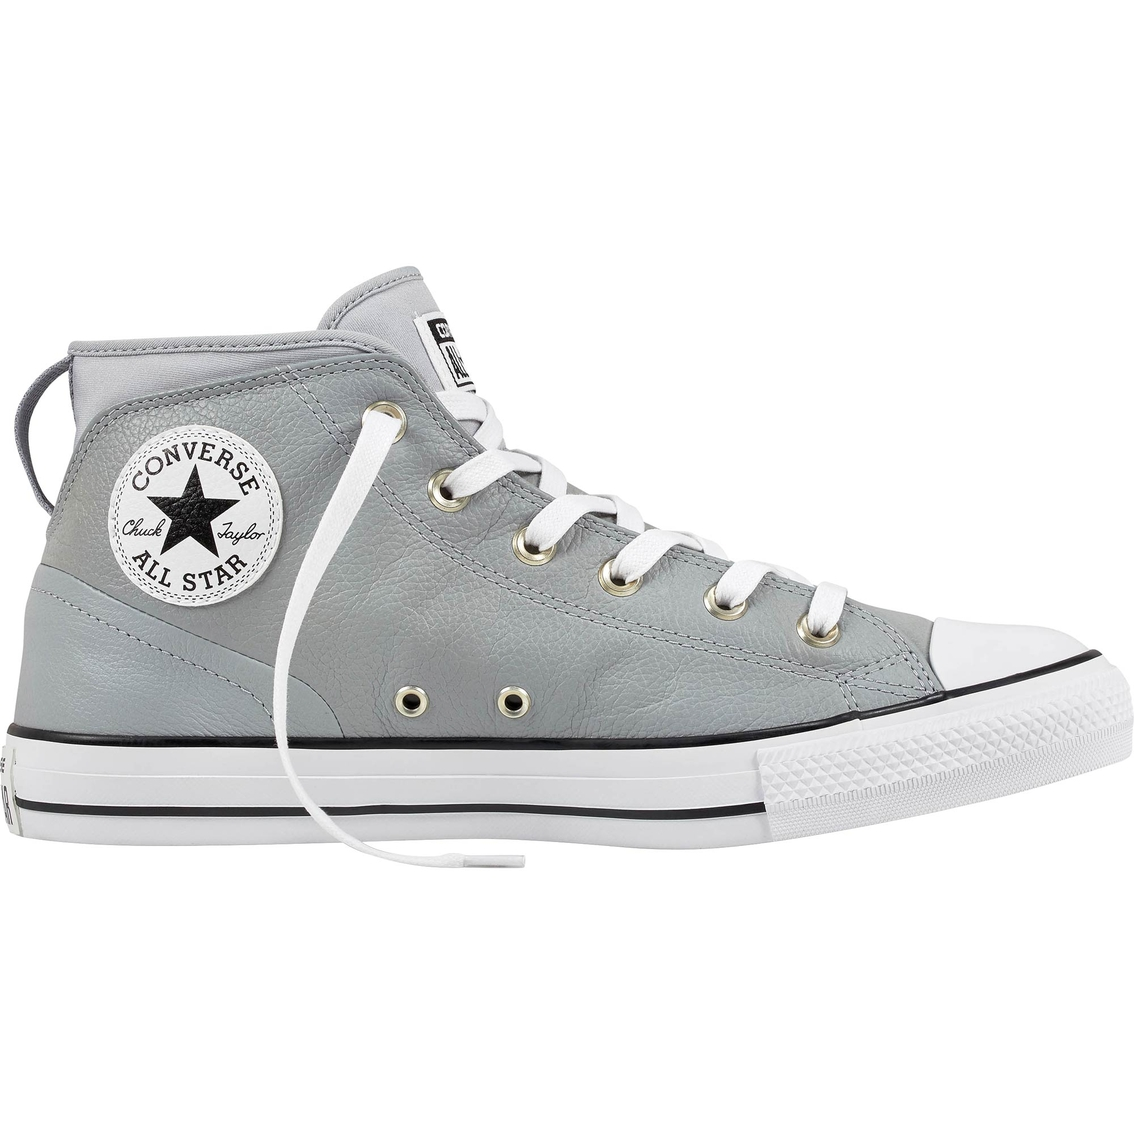 1e530a12a22e Converse Men s Chuck Taylor All Star Syde Street Summer Mid Top Sneakers